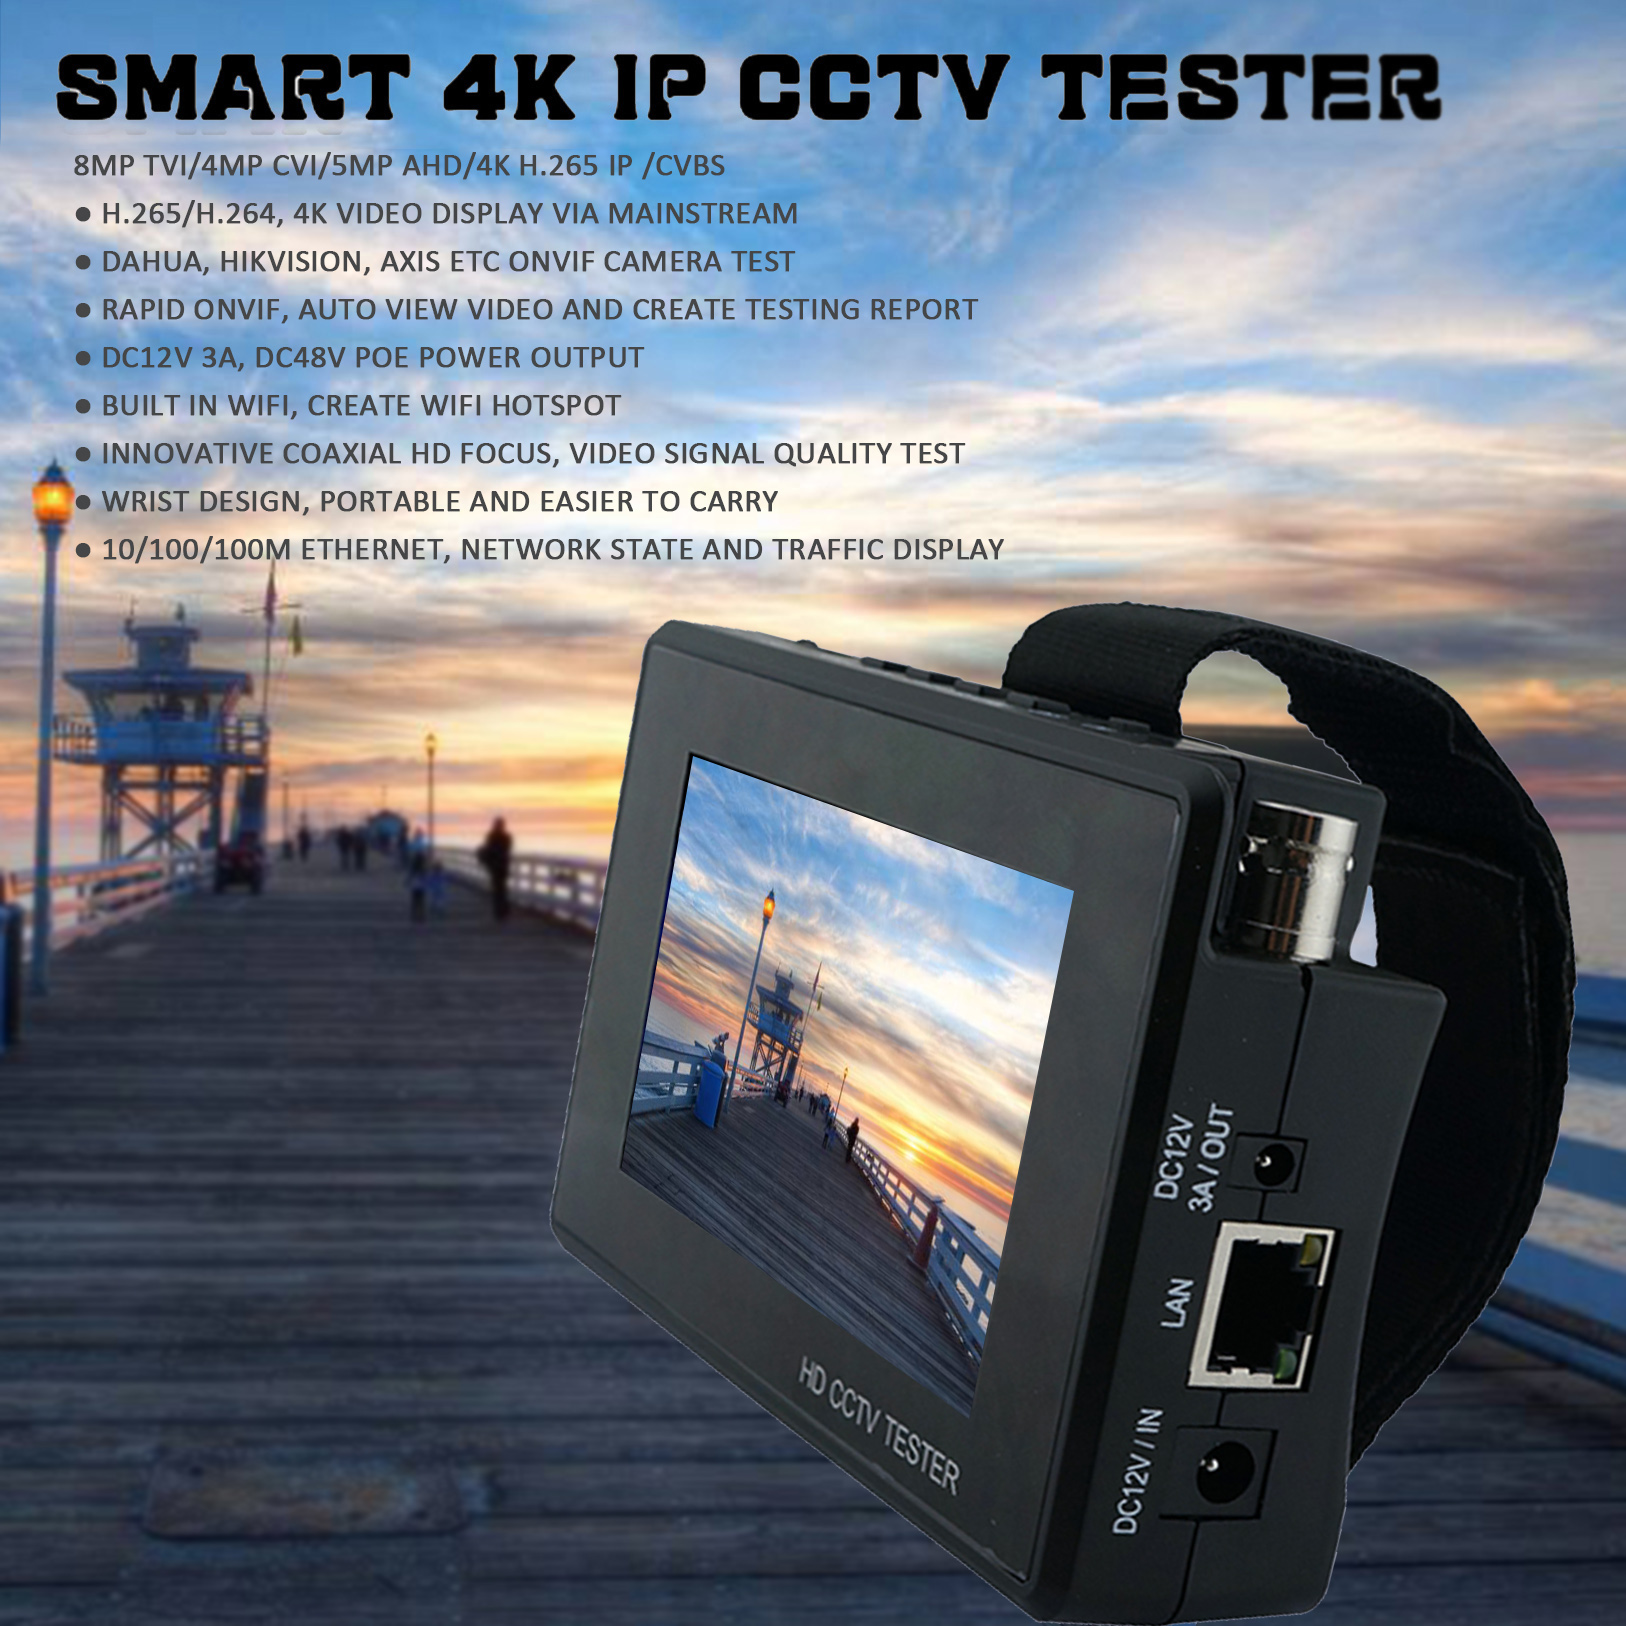 NEW Smart 8MP CCTV TESTER IPC 1800 Plus H265 264 Guide 4 Inch 4K Security device